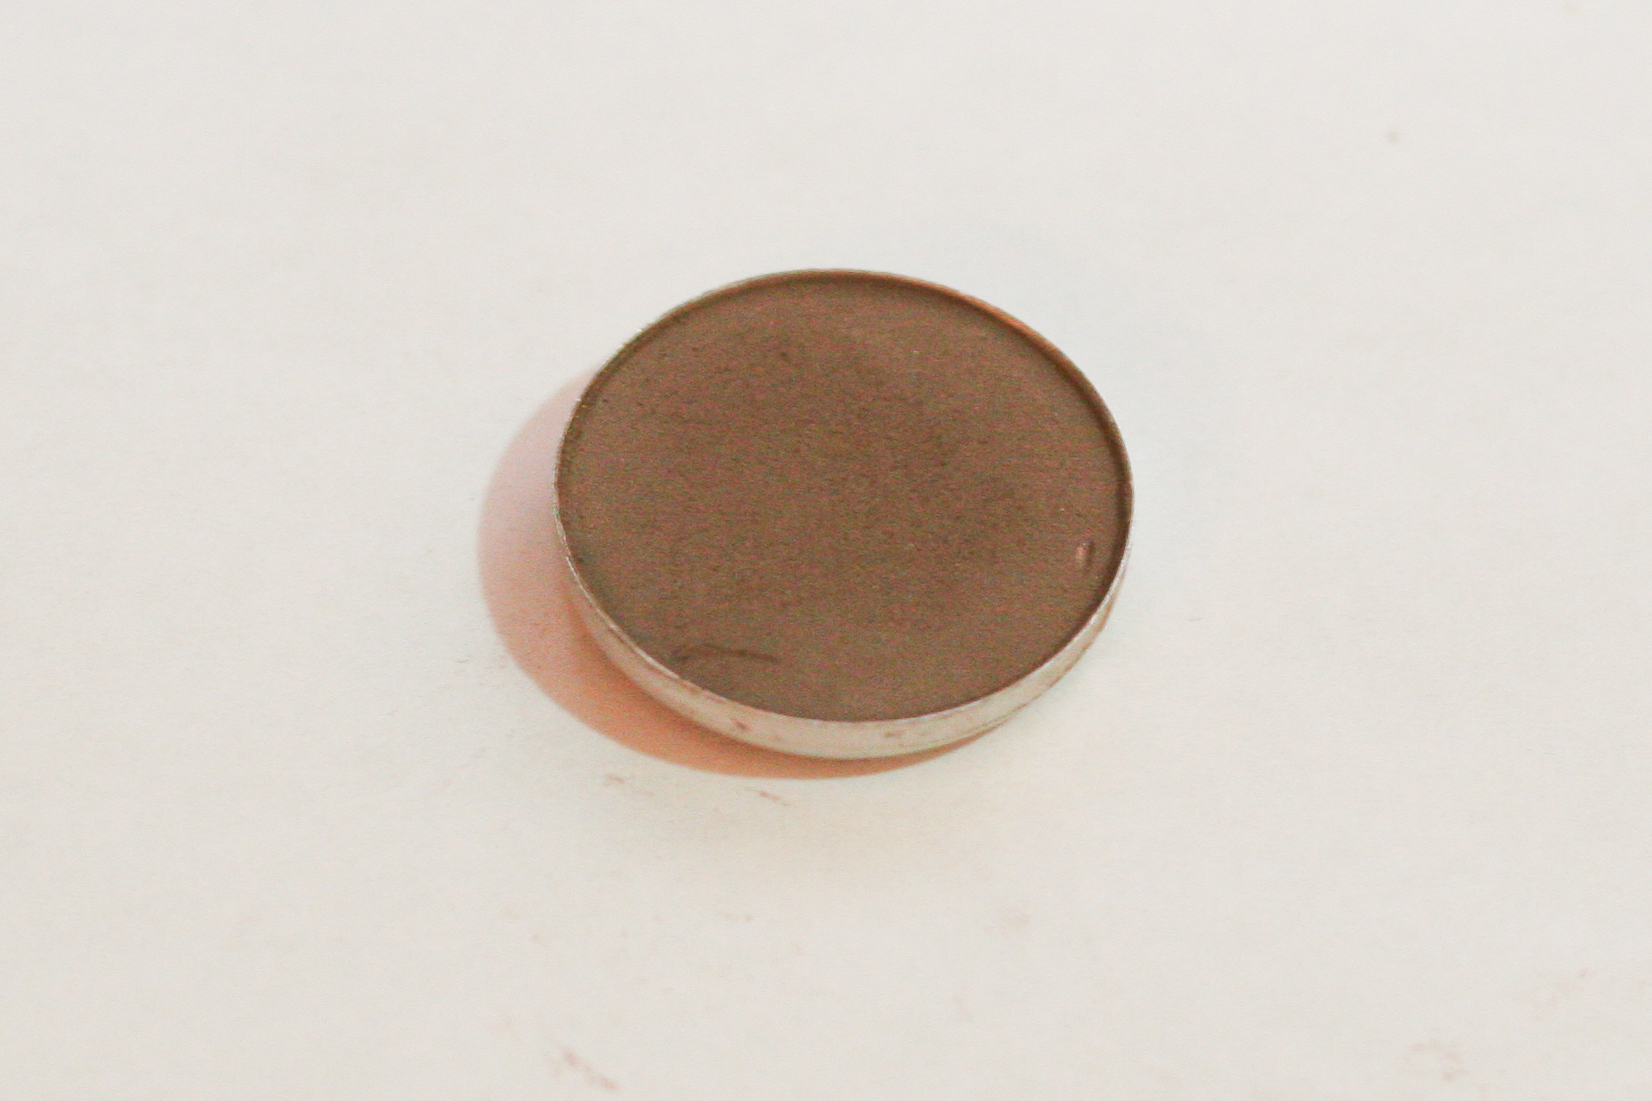 MAC eyeshadow in Concrete (matte).